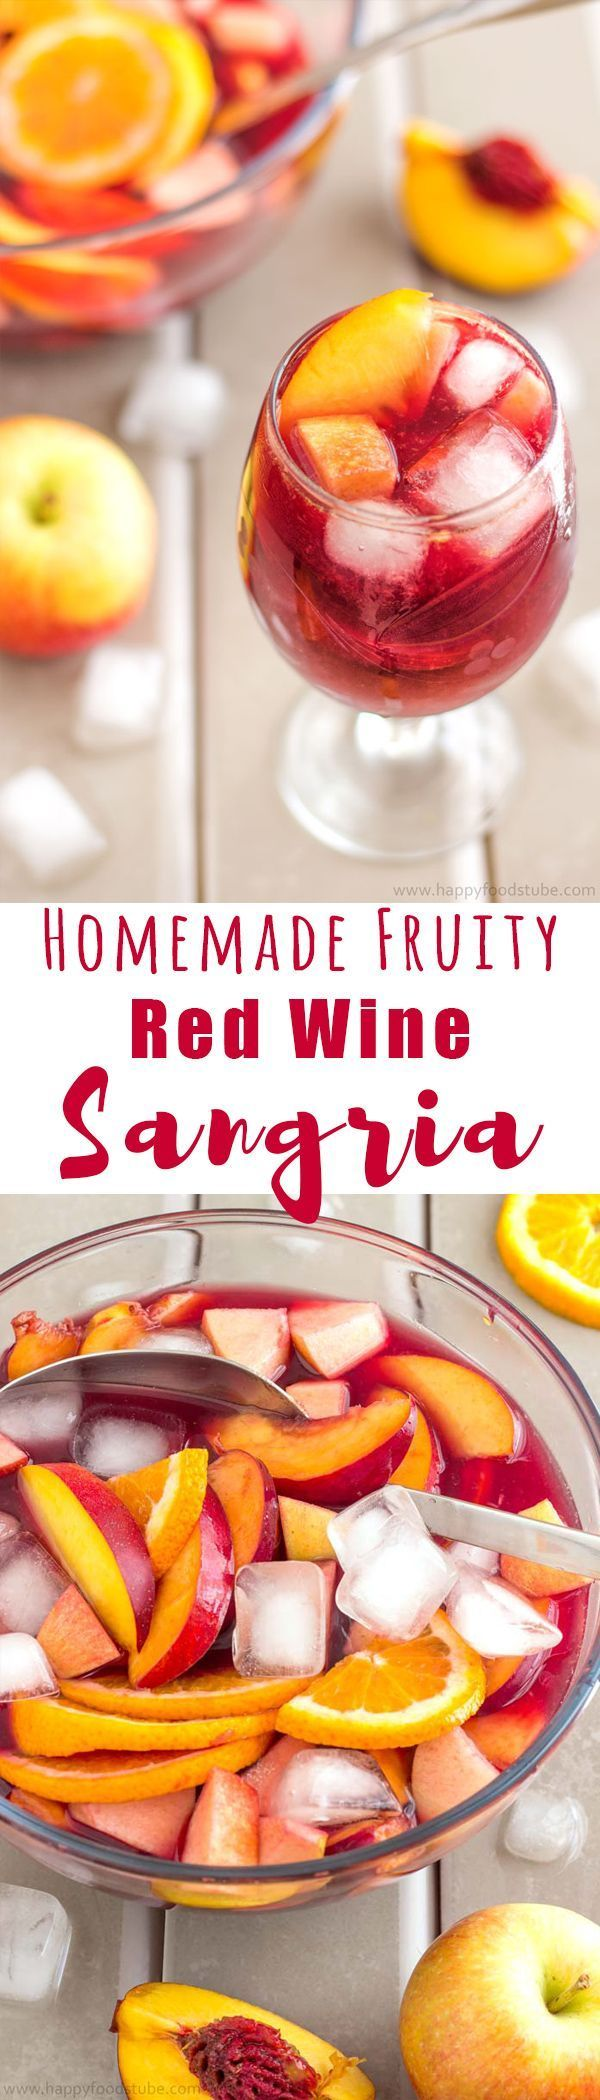 Homemade Fruity Red Wine Sangria. Super easy recipe. Nectarines, Apples, Oranges + Red Wine and Juice | http://happyfoodstube.com